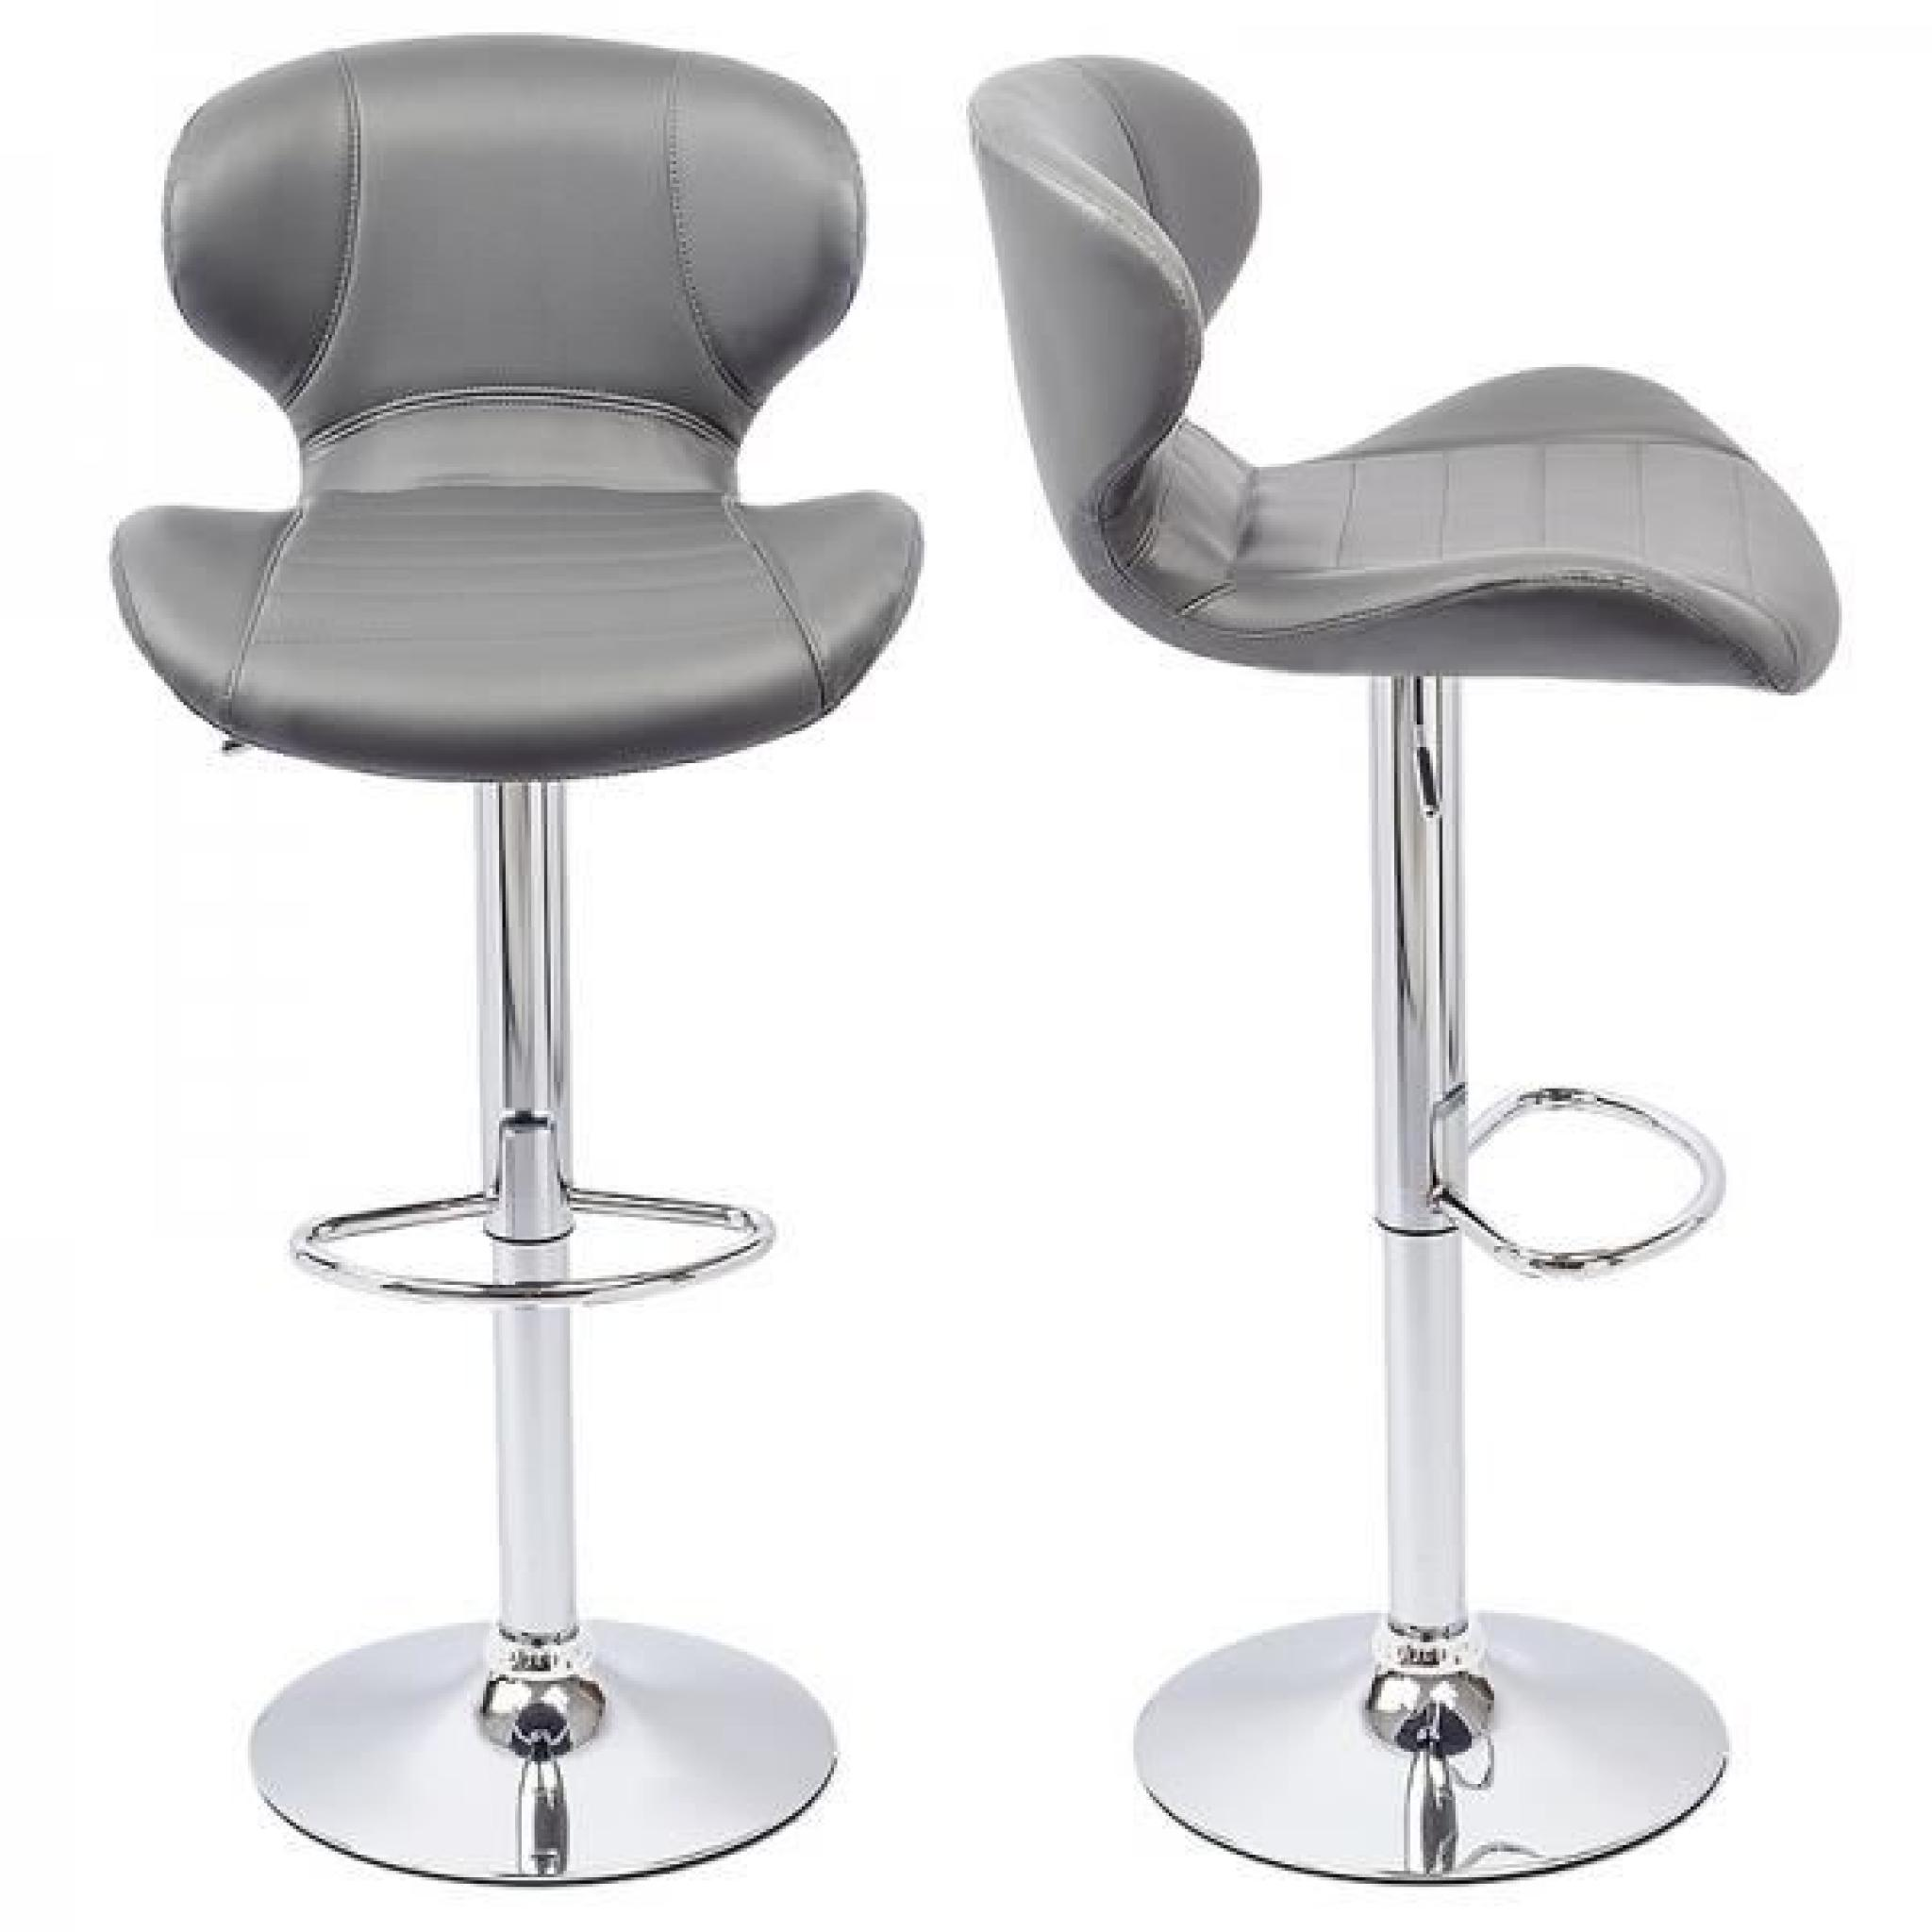 Tabouret De Bar Gris Lot De 2 Lead Achat Vente Tabouret - York Lot De 2 Tabourets De Bar Noir